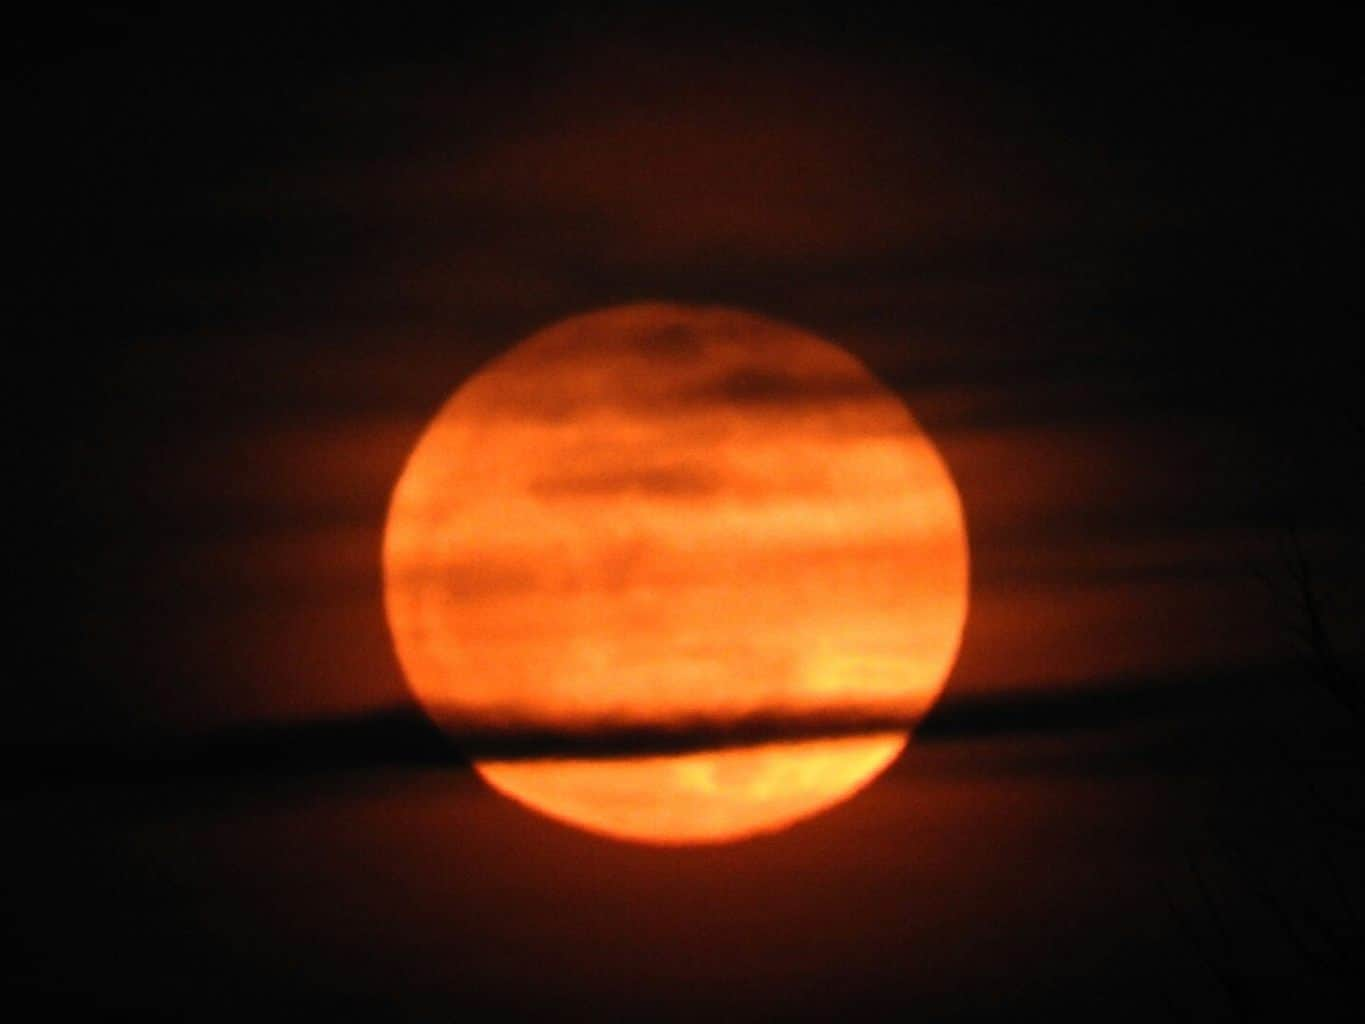 This evenings MoonRise from Indiana. (Love this shot, looks like a planet instead of the Moon )